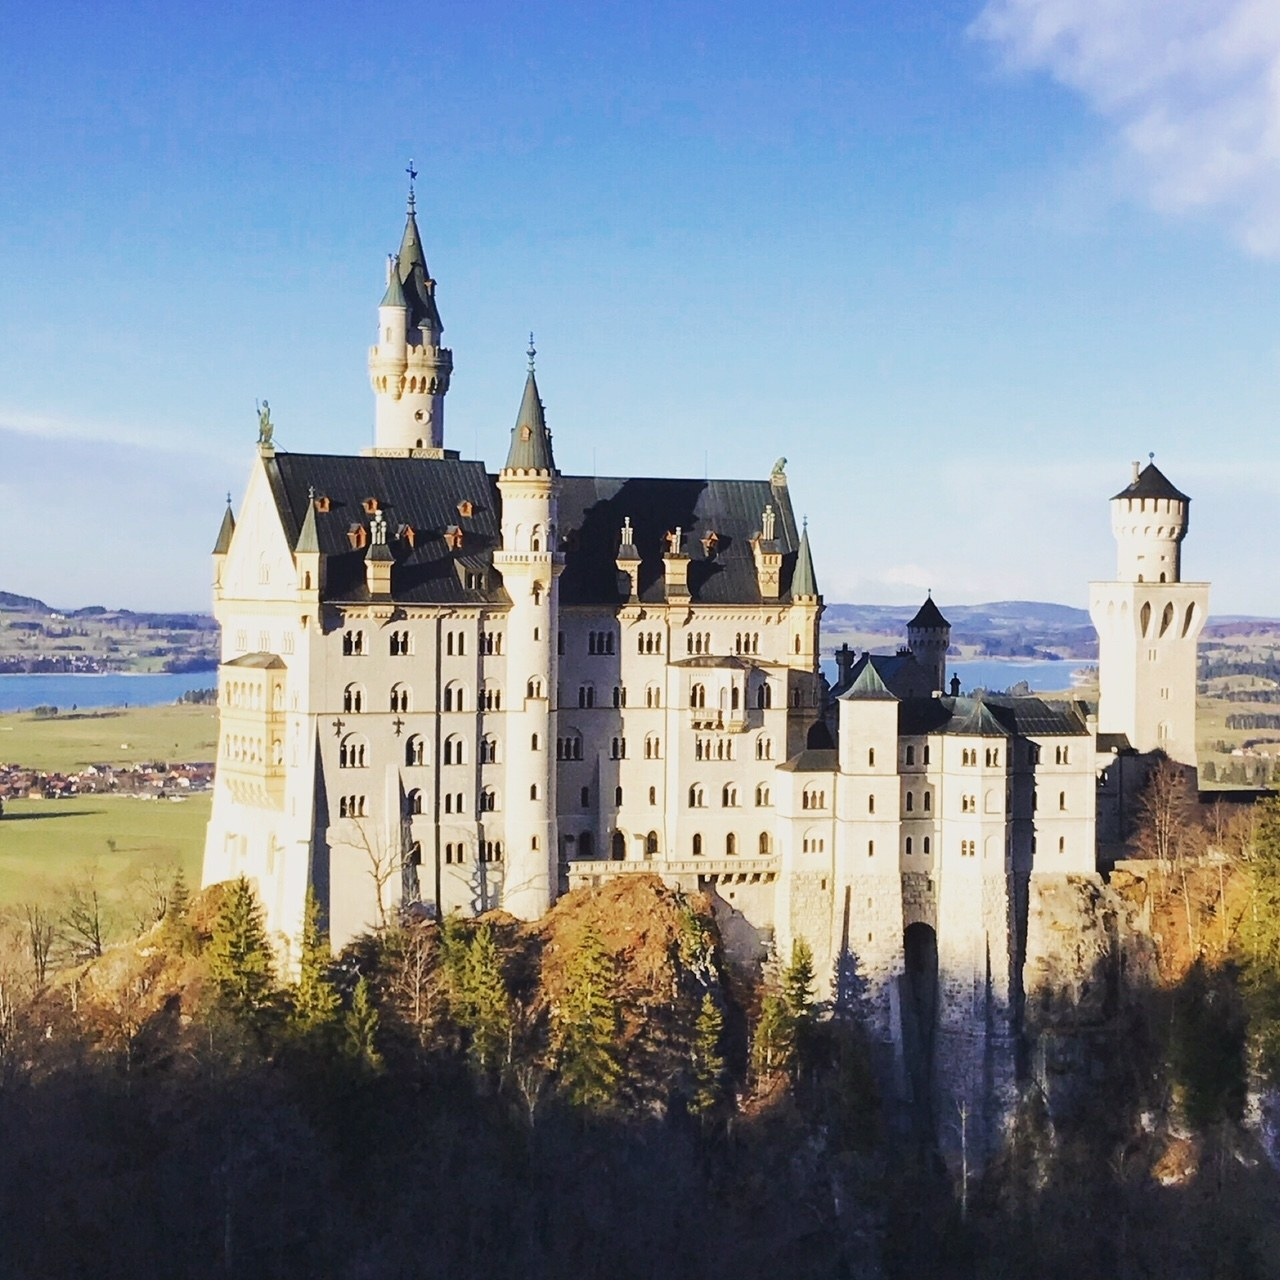 Neuschwanstein Castle glows in the German spring sun.